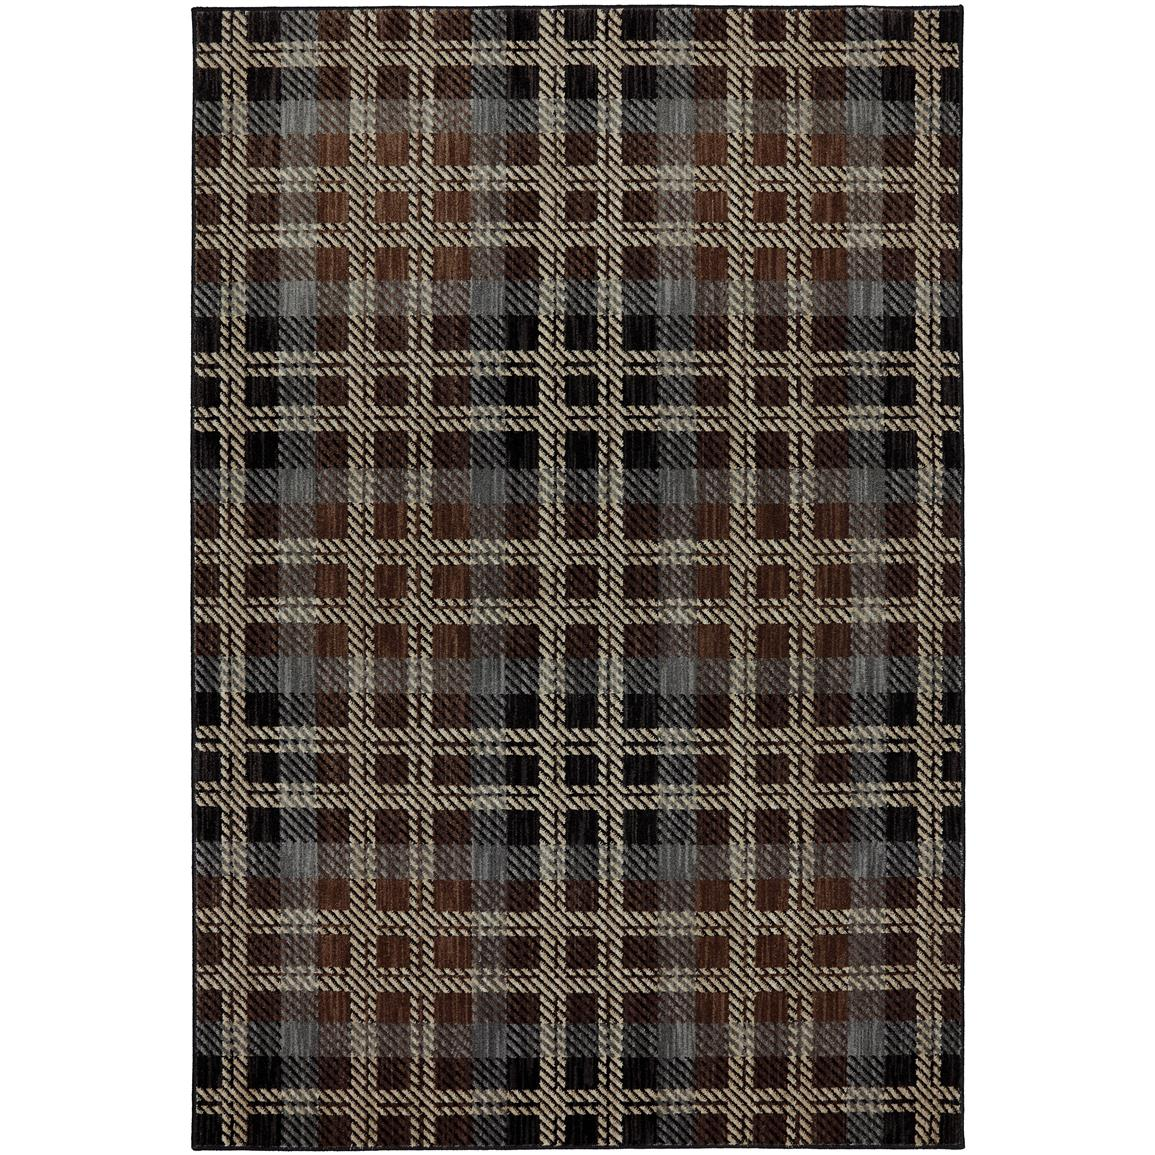 Billings Black Rug, Black